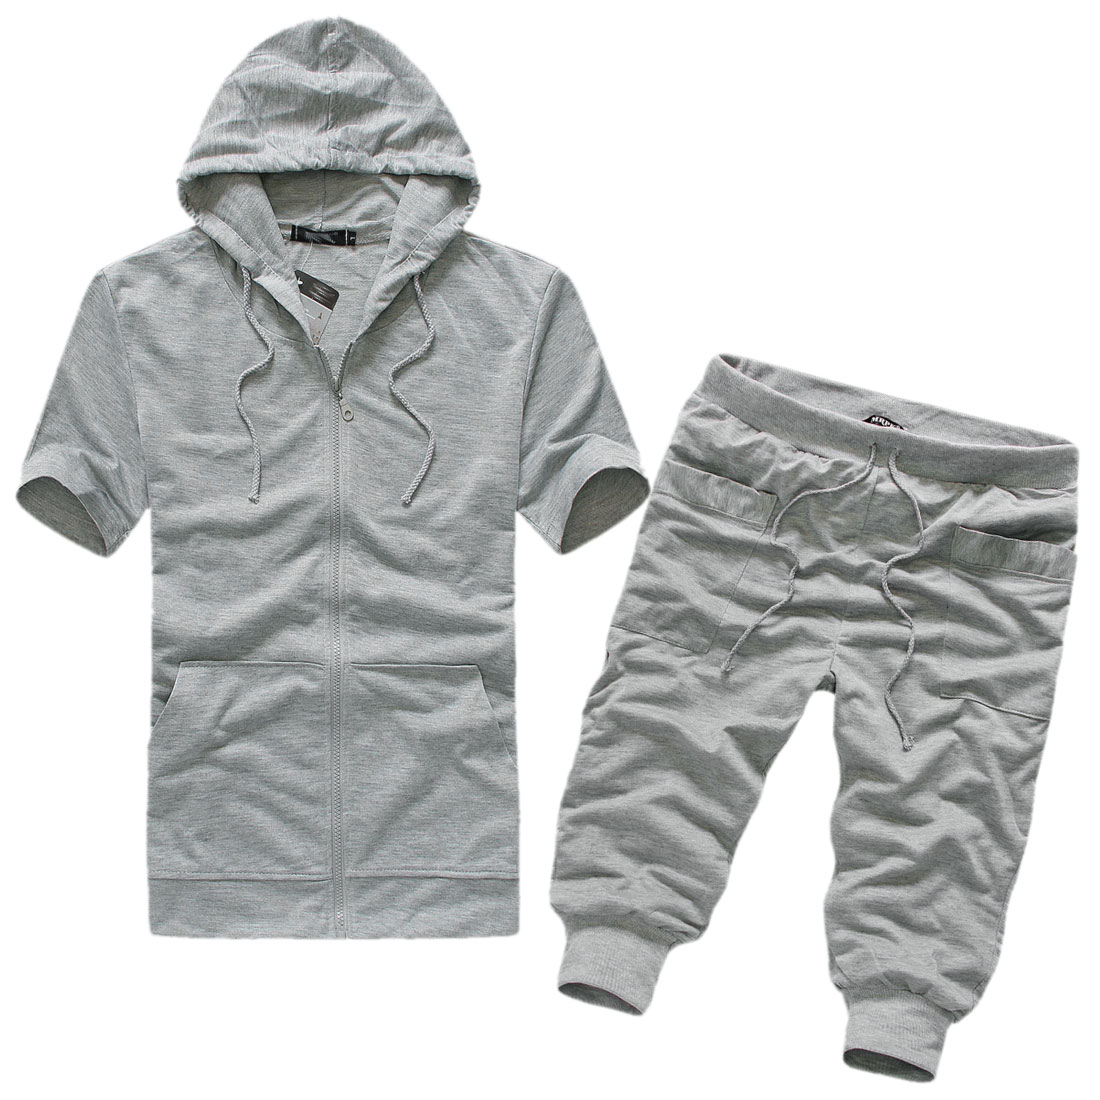 Man Short-sleeved Hooded Tops w Hip Pockets Pants Light Gray M